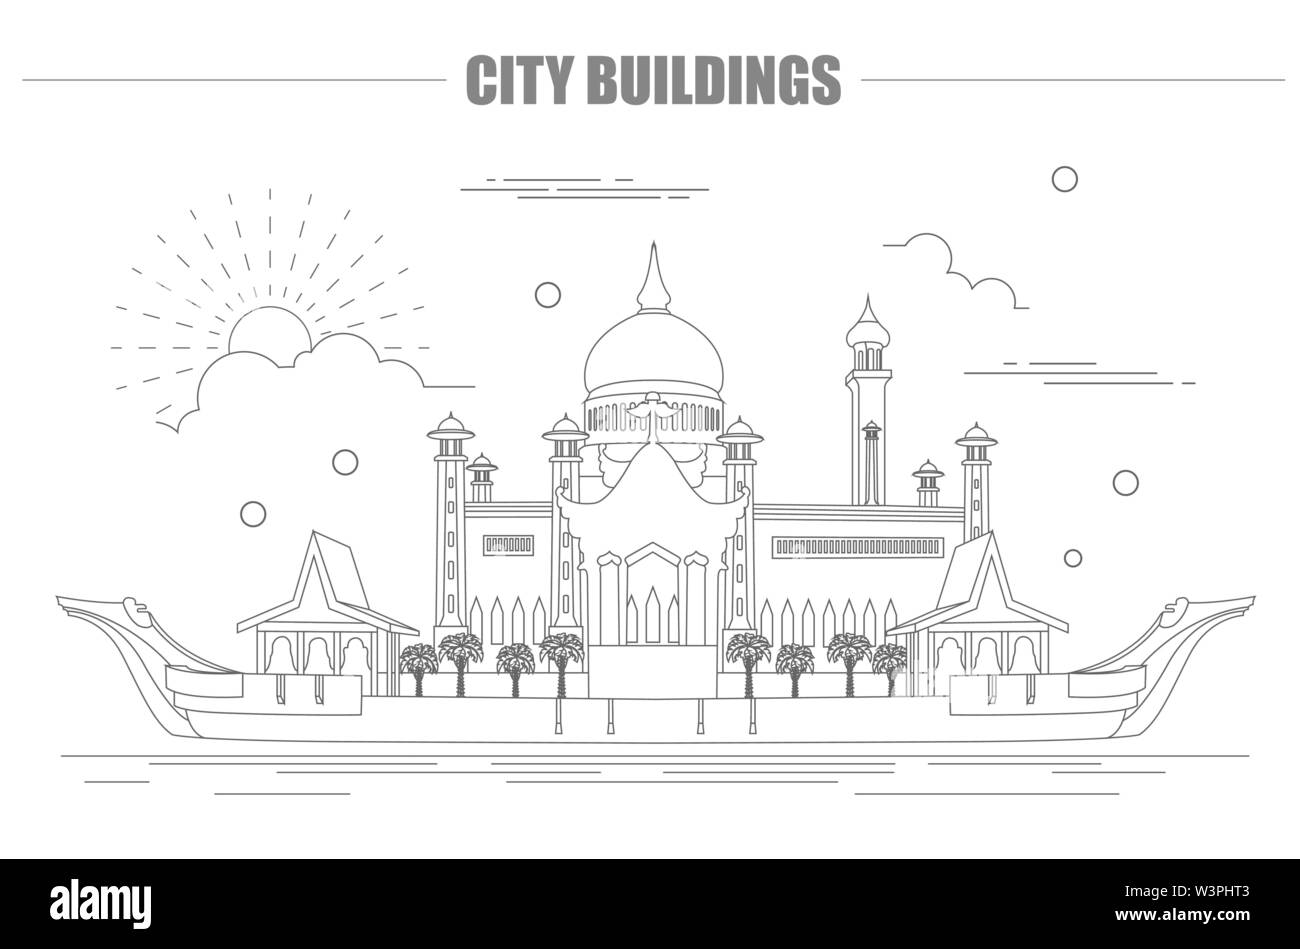 City buildings graphic template. Sultan Omar mosque. Brunei. Vector illustration - Stock Image